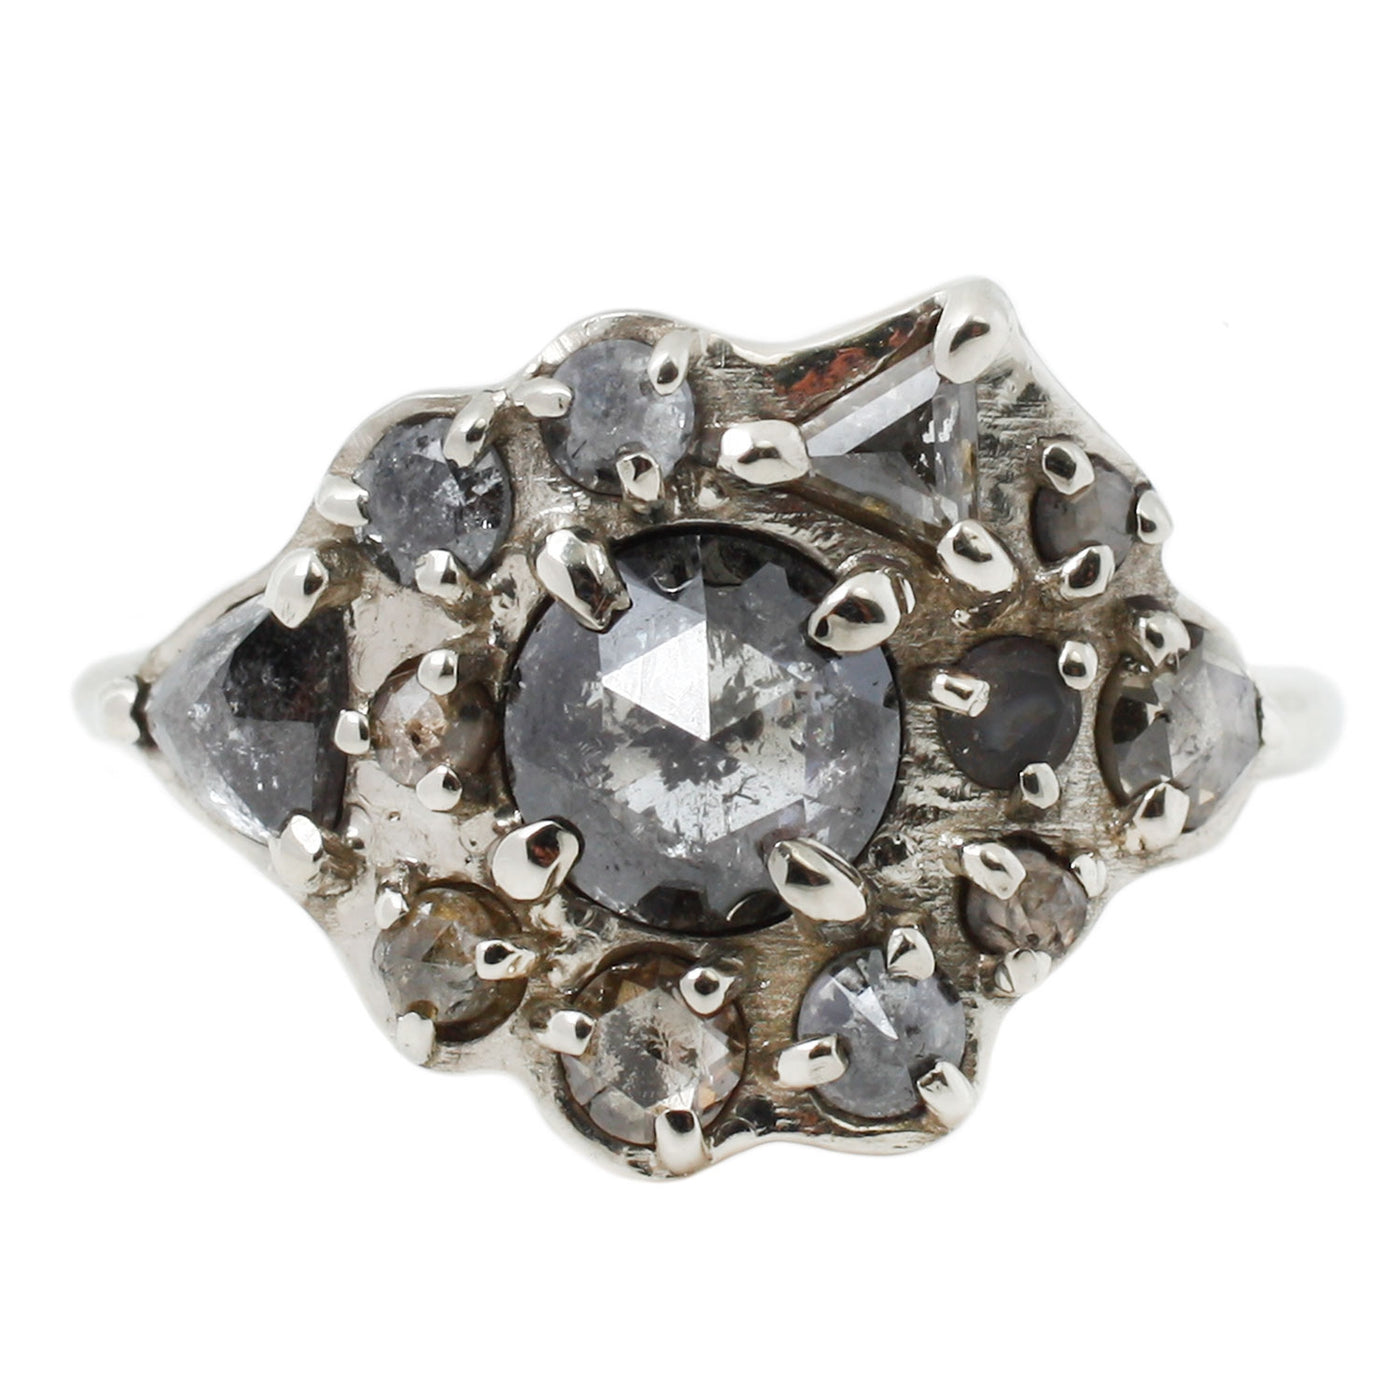 Lauren Wolf Jewelry Diamond Cluster Ring in White Gold